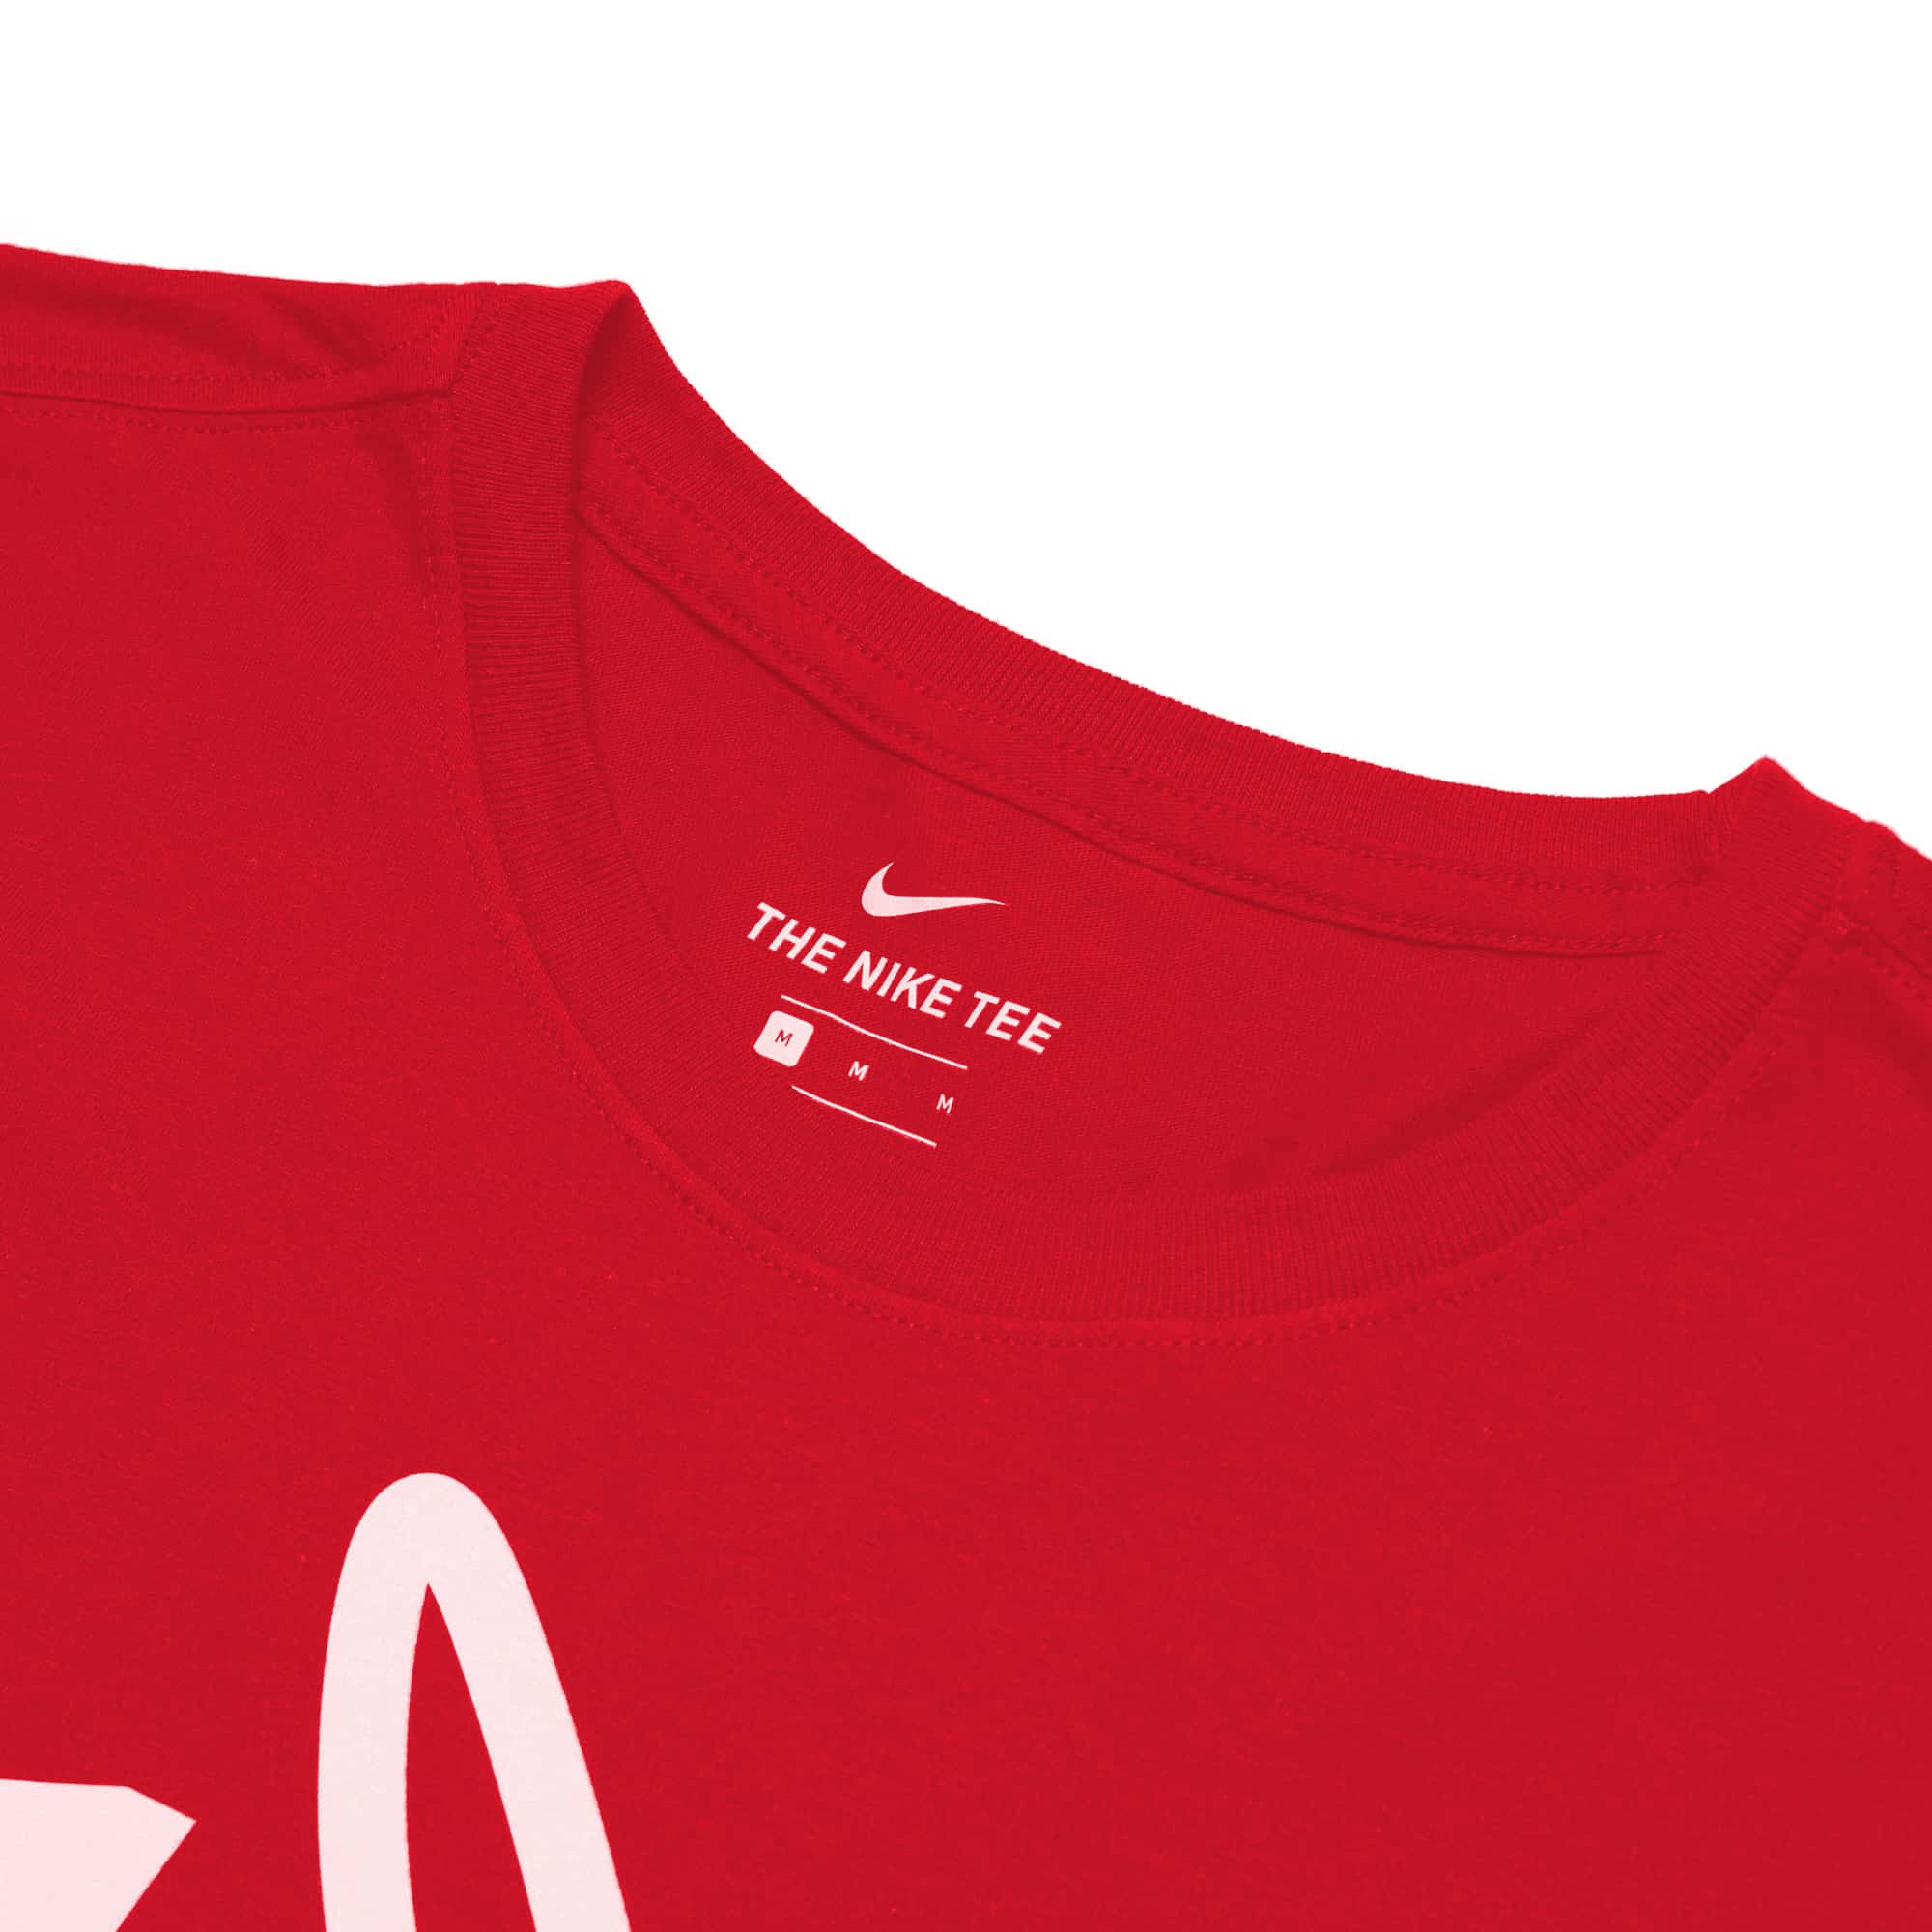 116 x Nike Core Tee - Gym Red